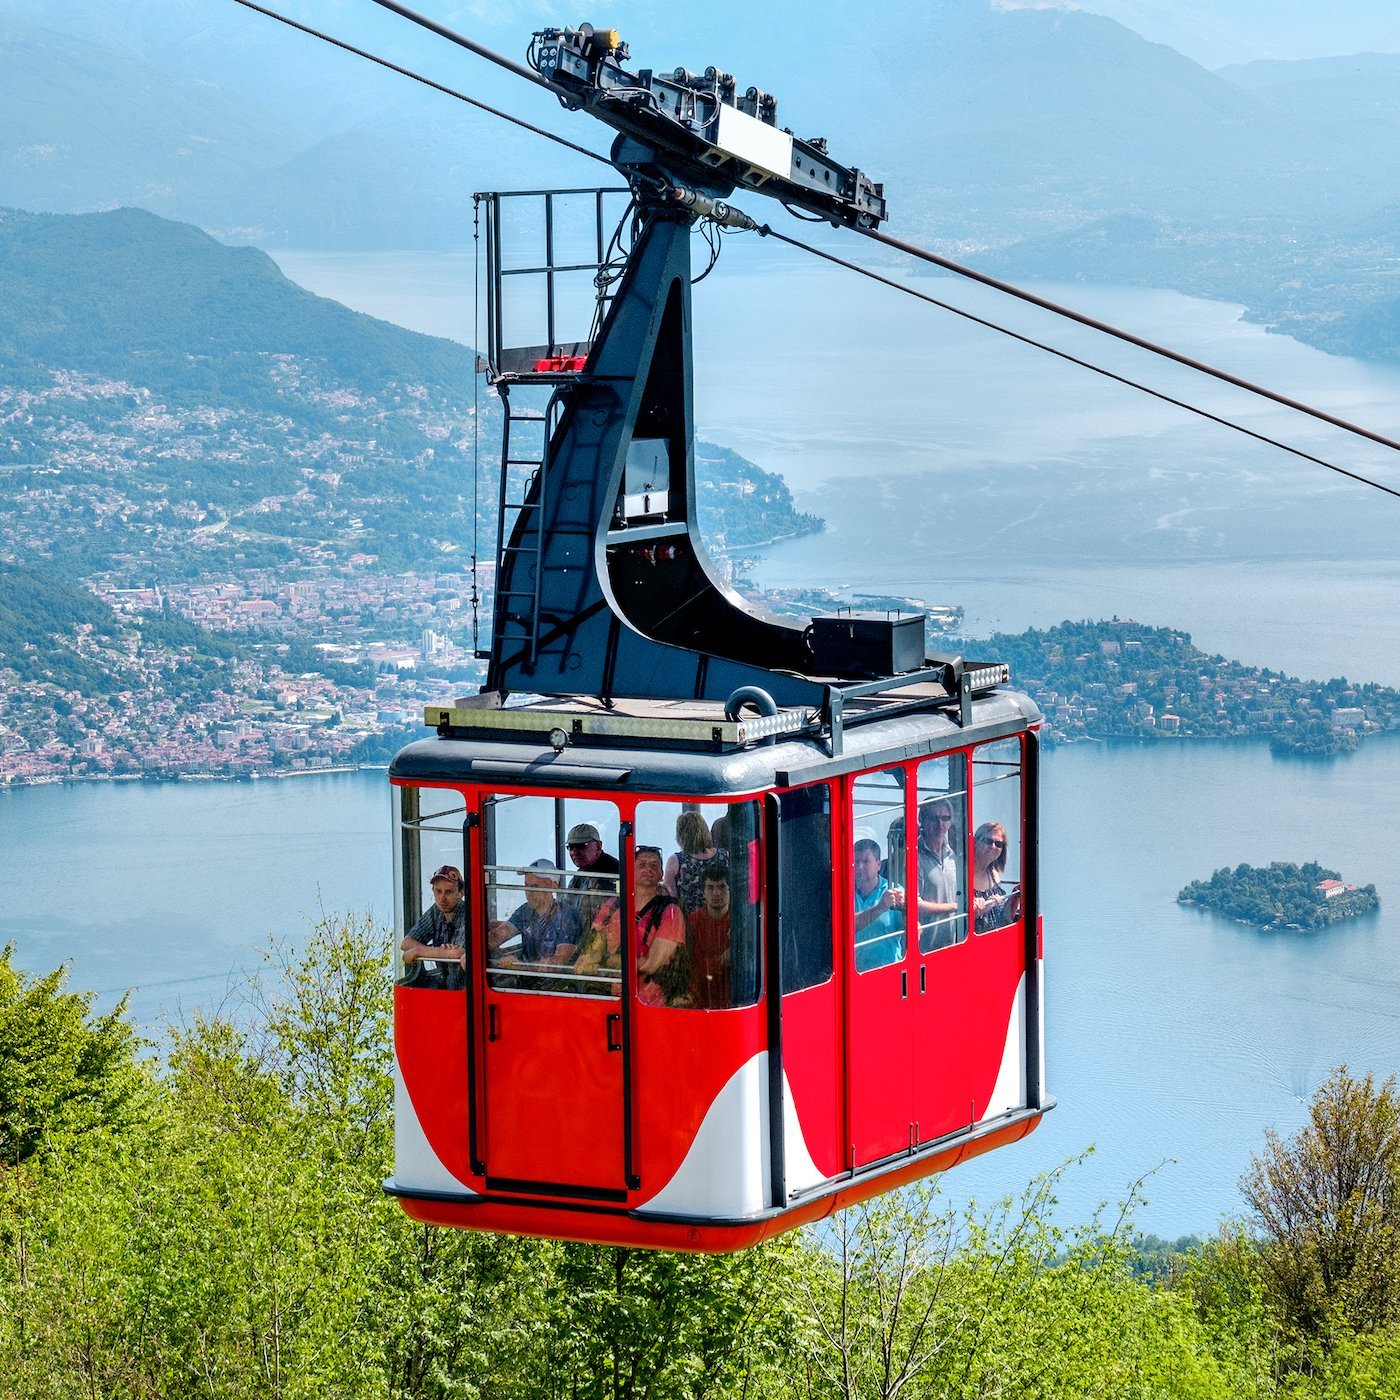 Listen:  At Least 9 Dead in Italian Cable Car Accident